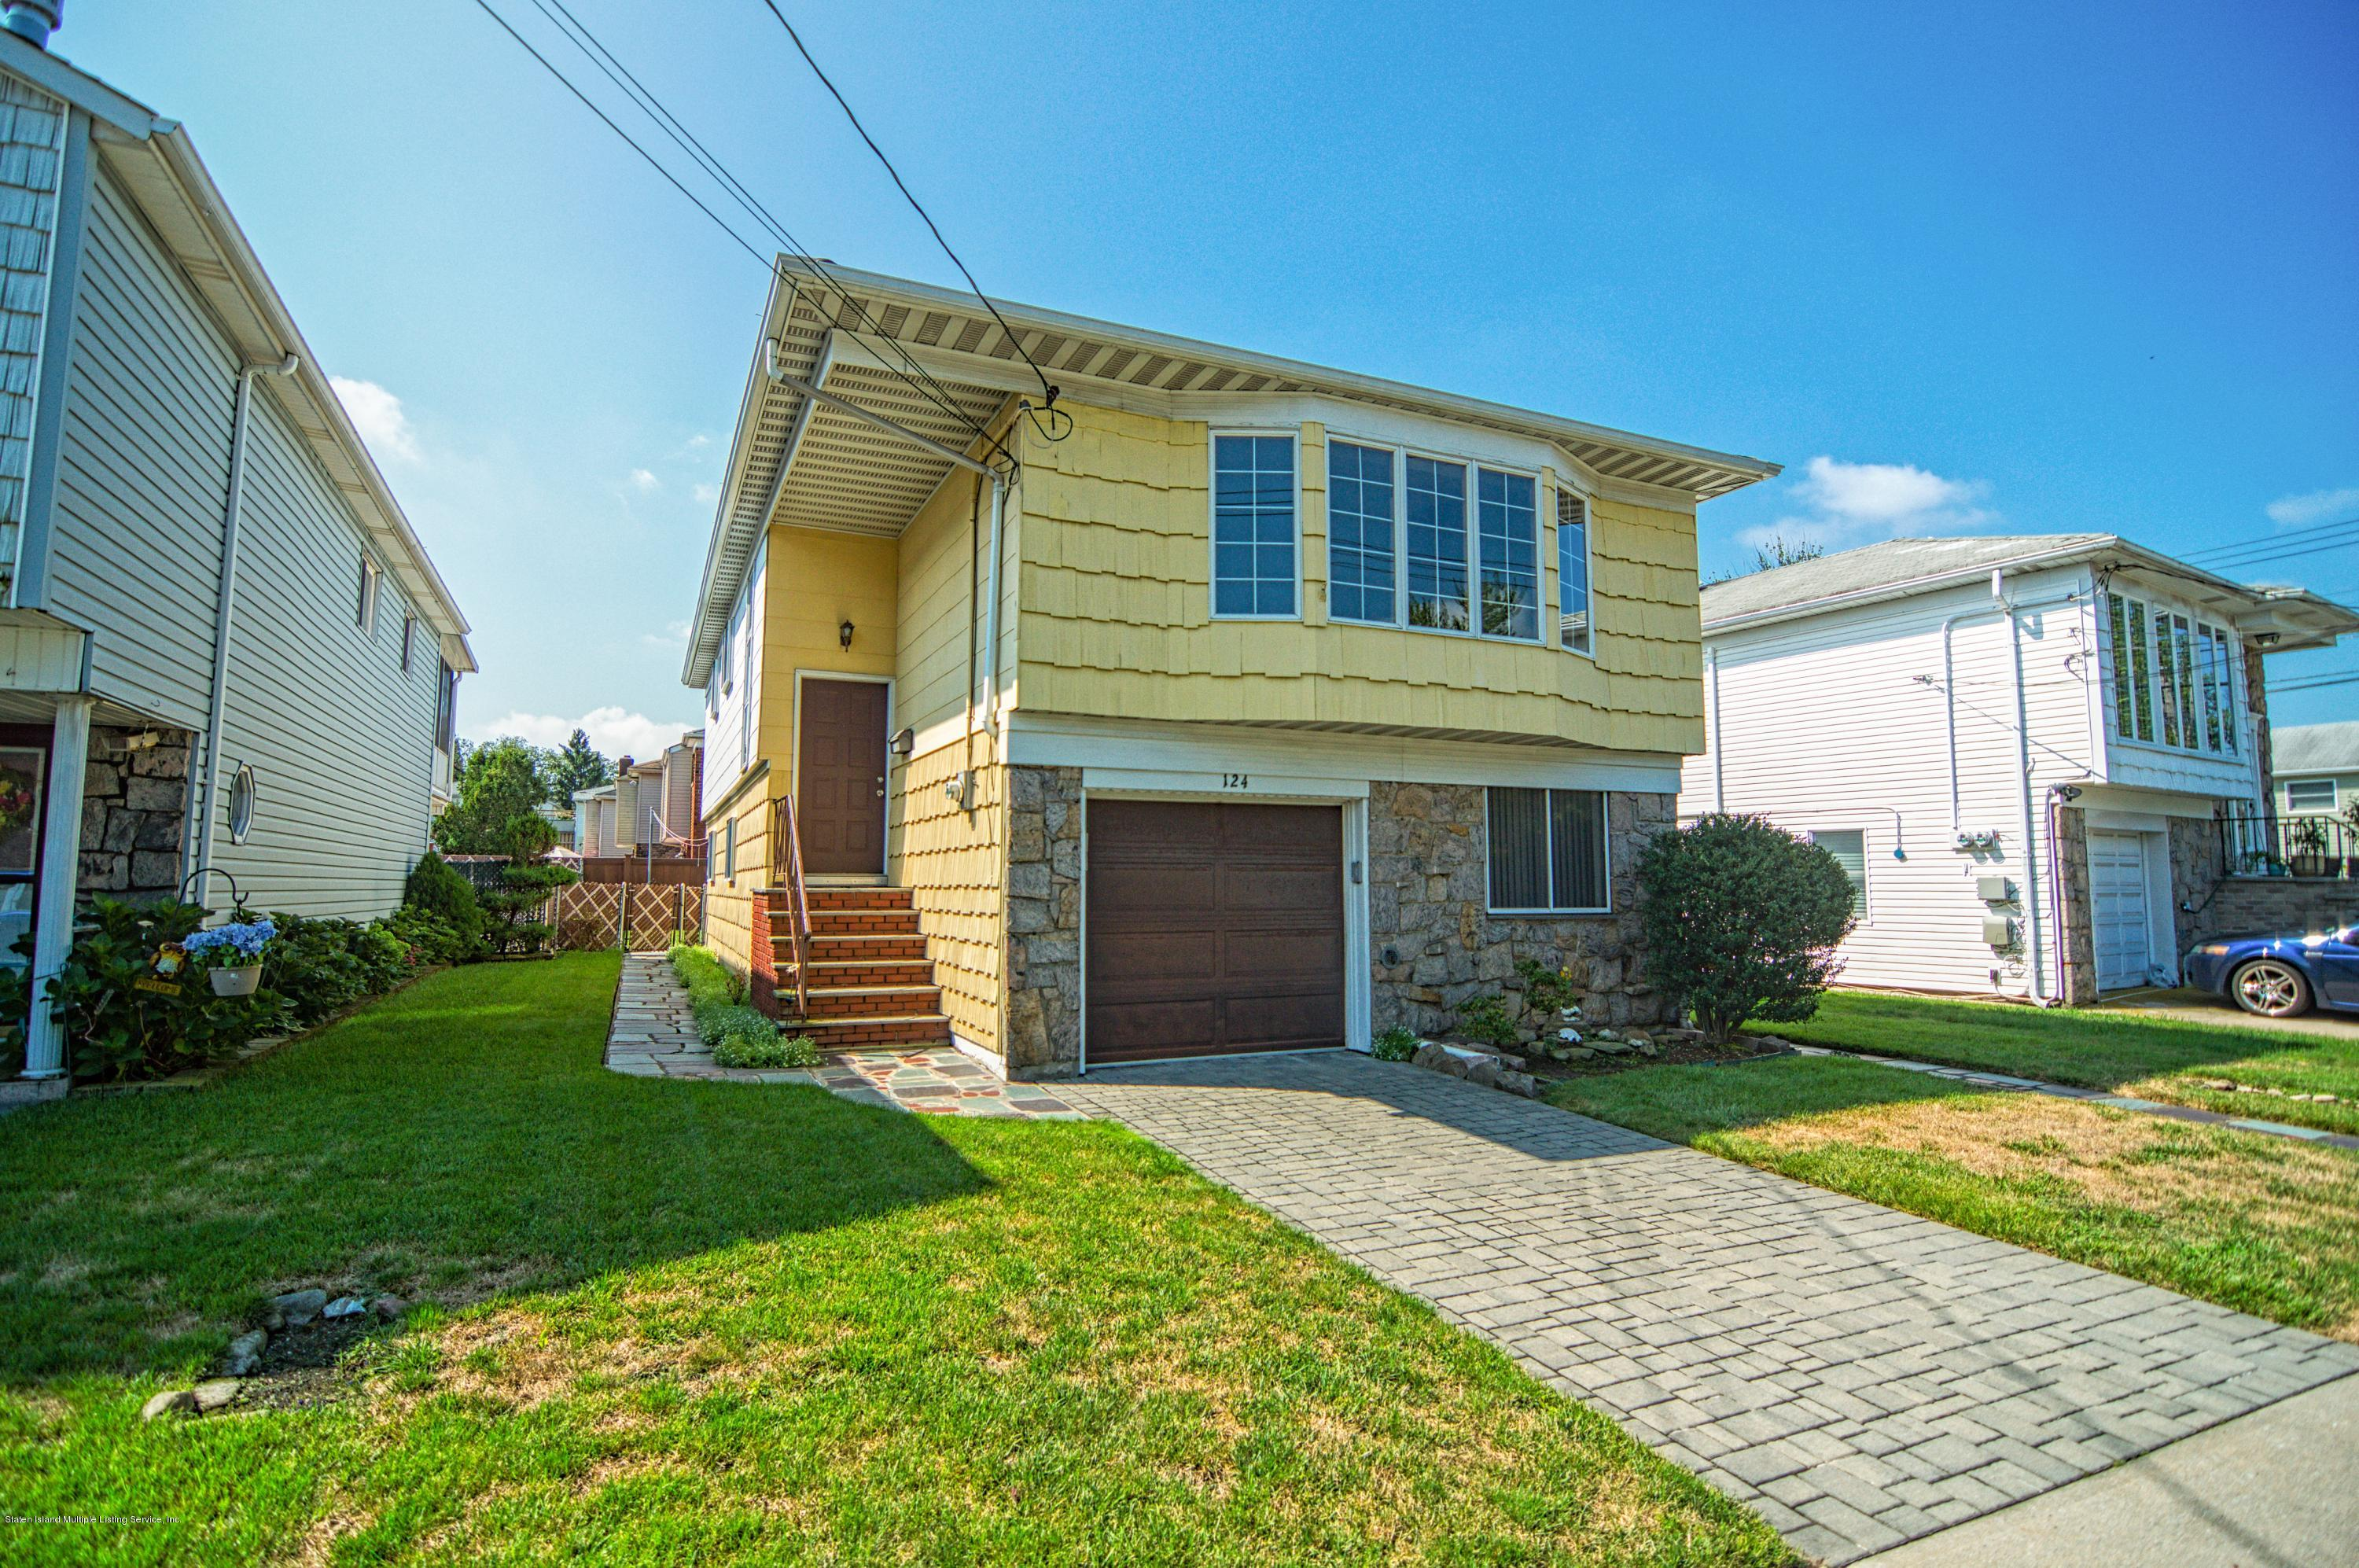 Single Family - Detached 124 Queen Street  Staten Island, NY 10314, MLS-1131413-2